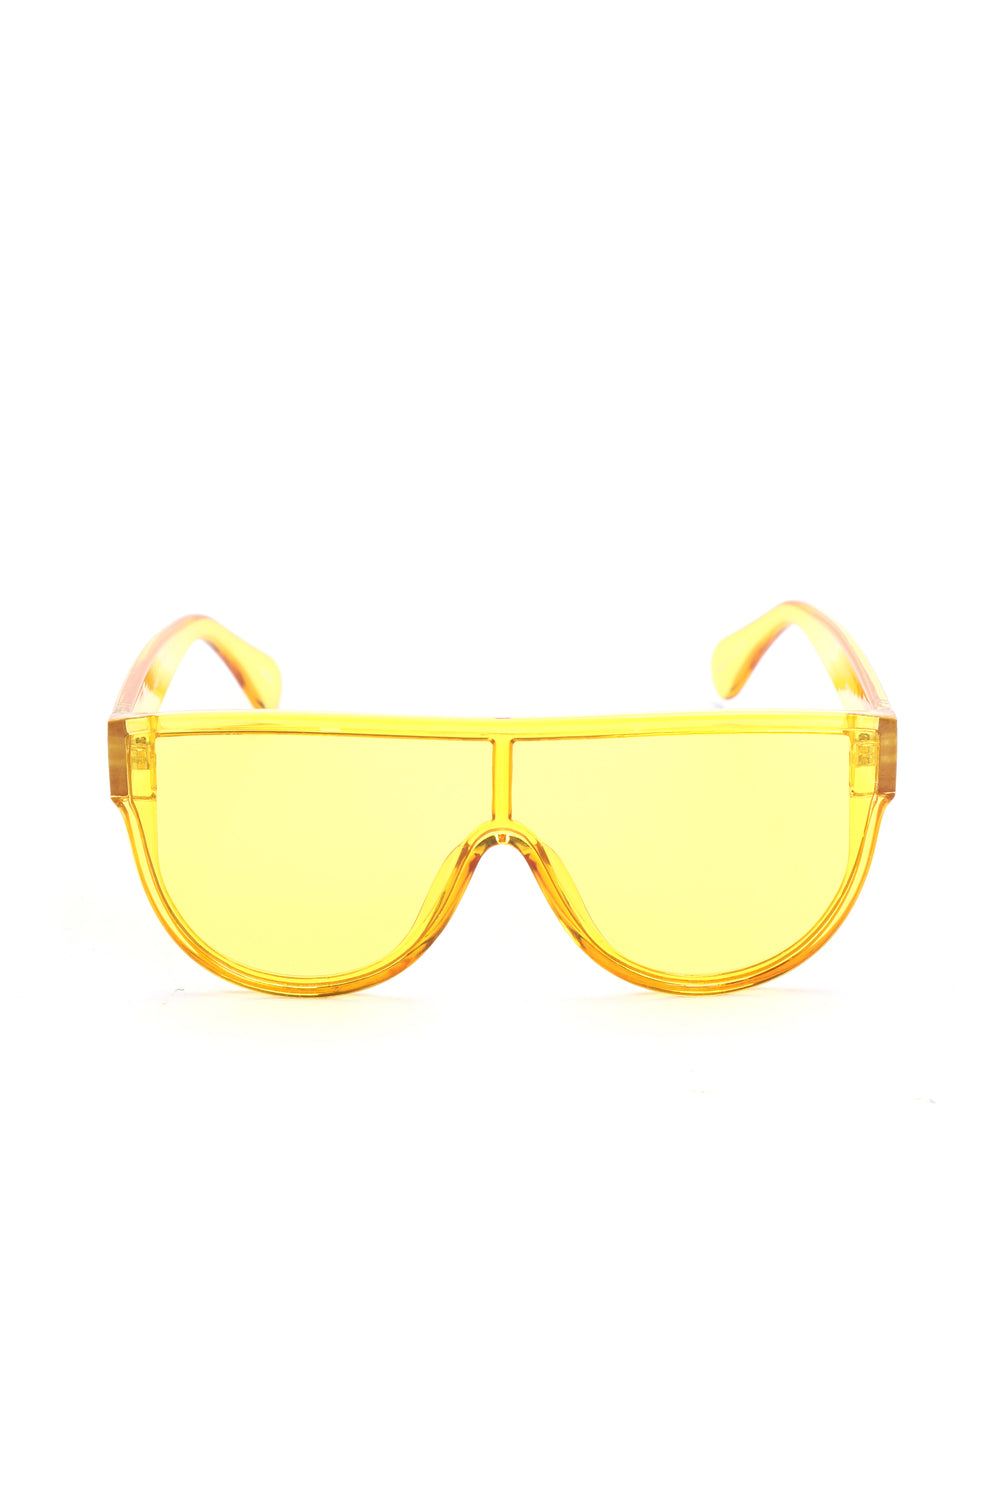 Ready For The Show Sunglasses - Yellow